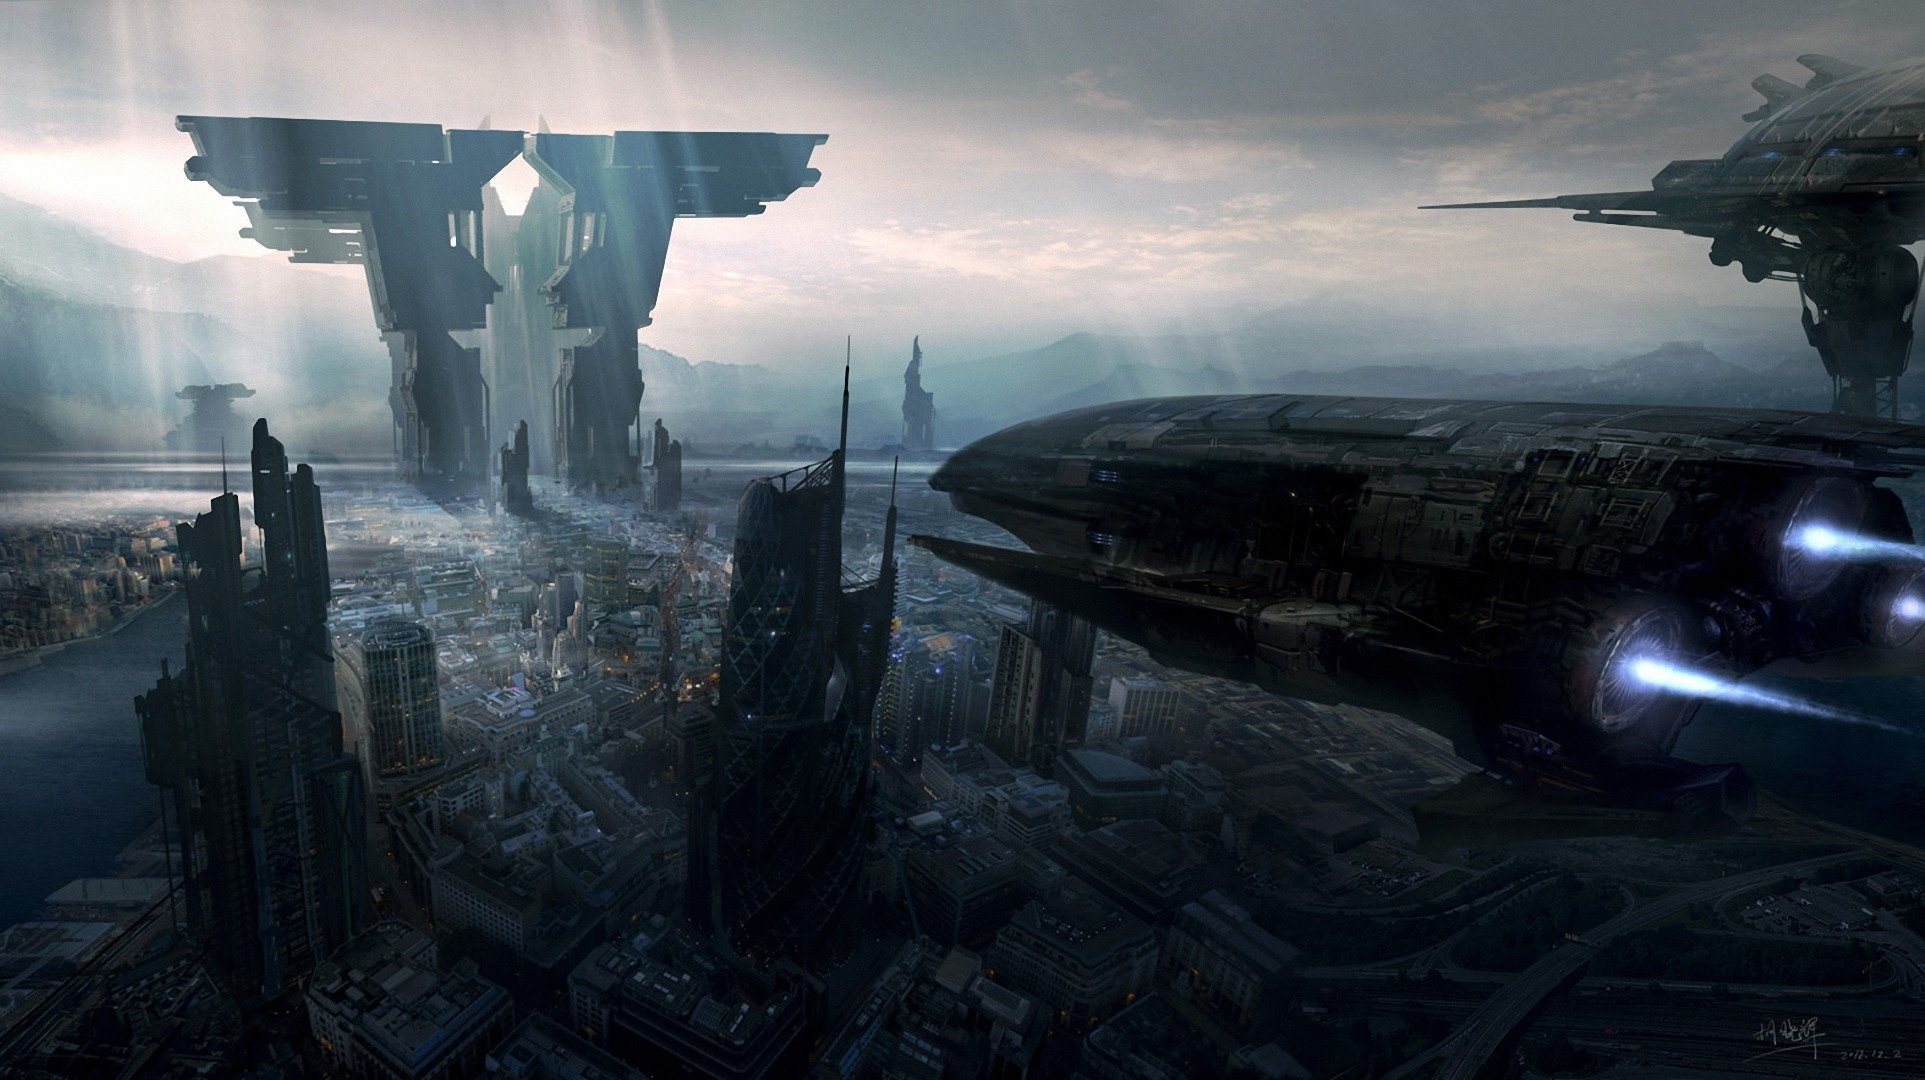 City The Future Ships Art Spaceship G Wallpaper